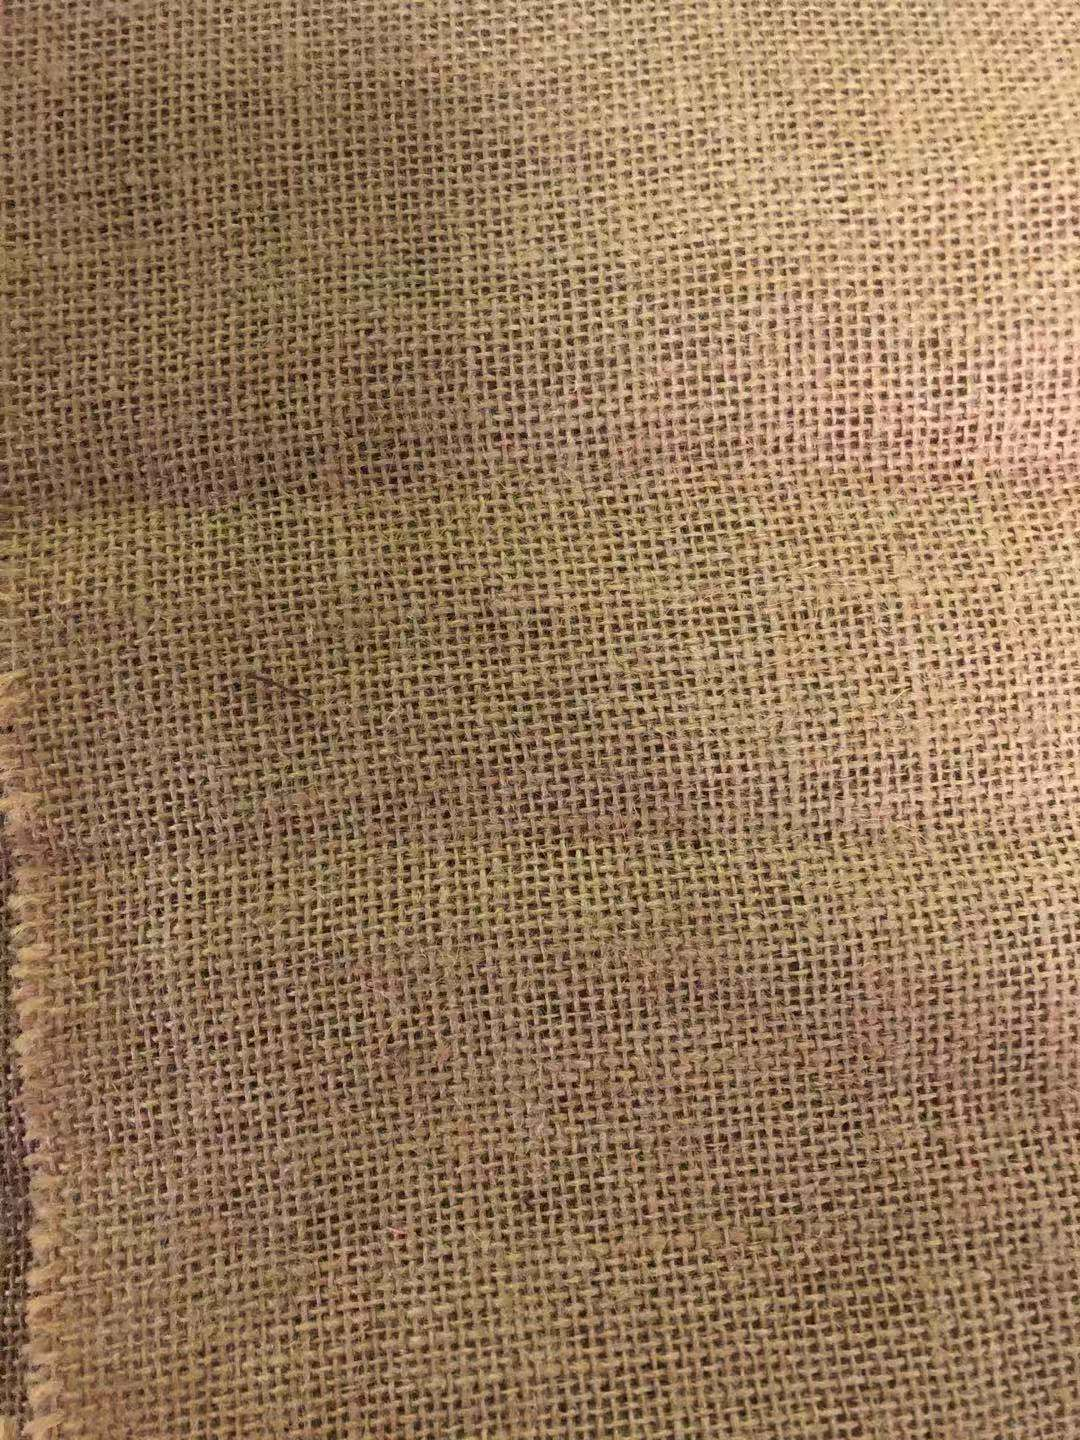 Jute Cushion Fabric